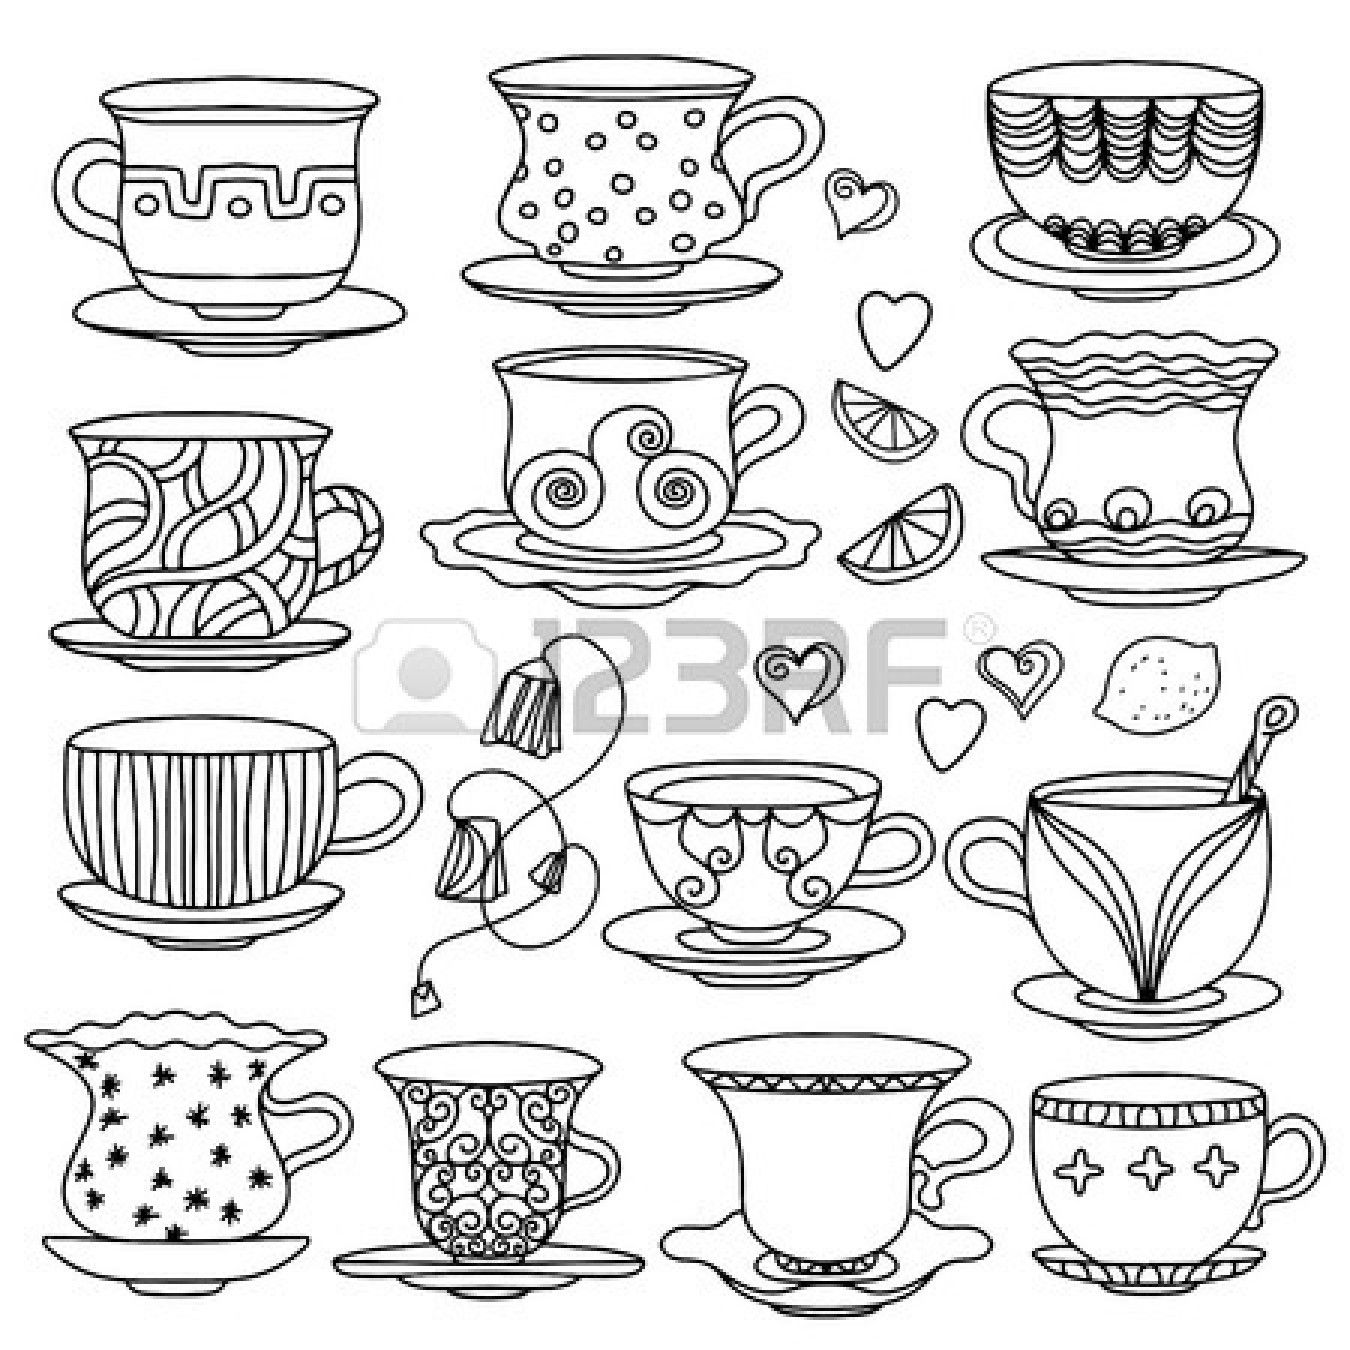 teacup doodle ideas  tea cup drawing